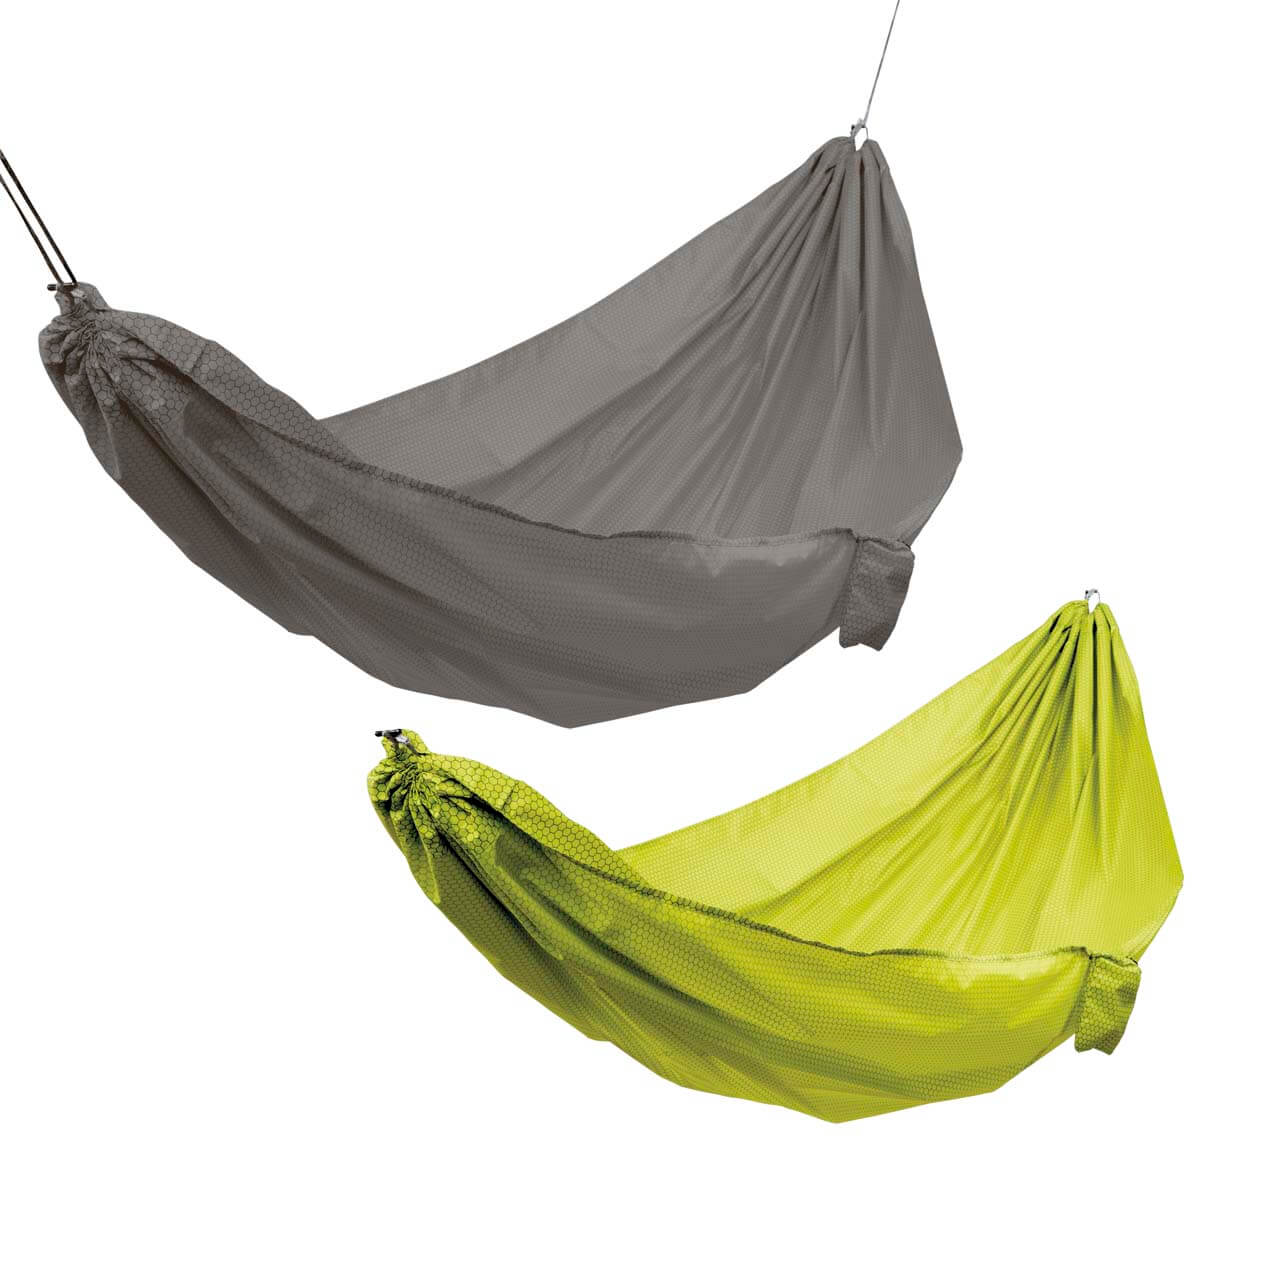 Hängematte Exped Exped Travel Hammock Lite